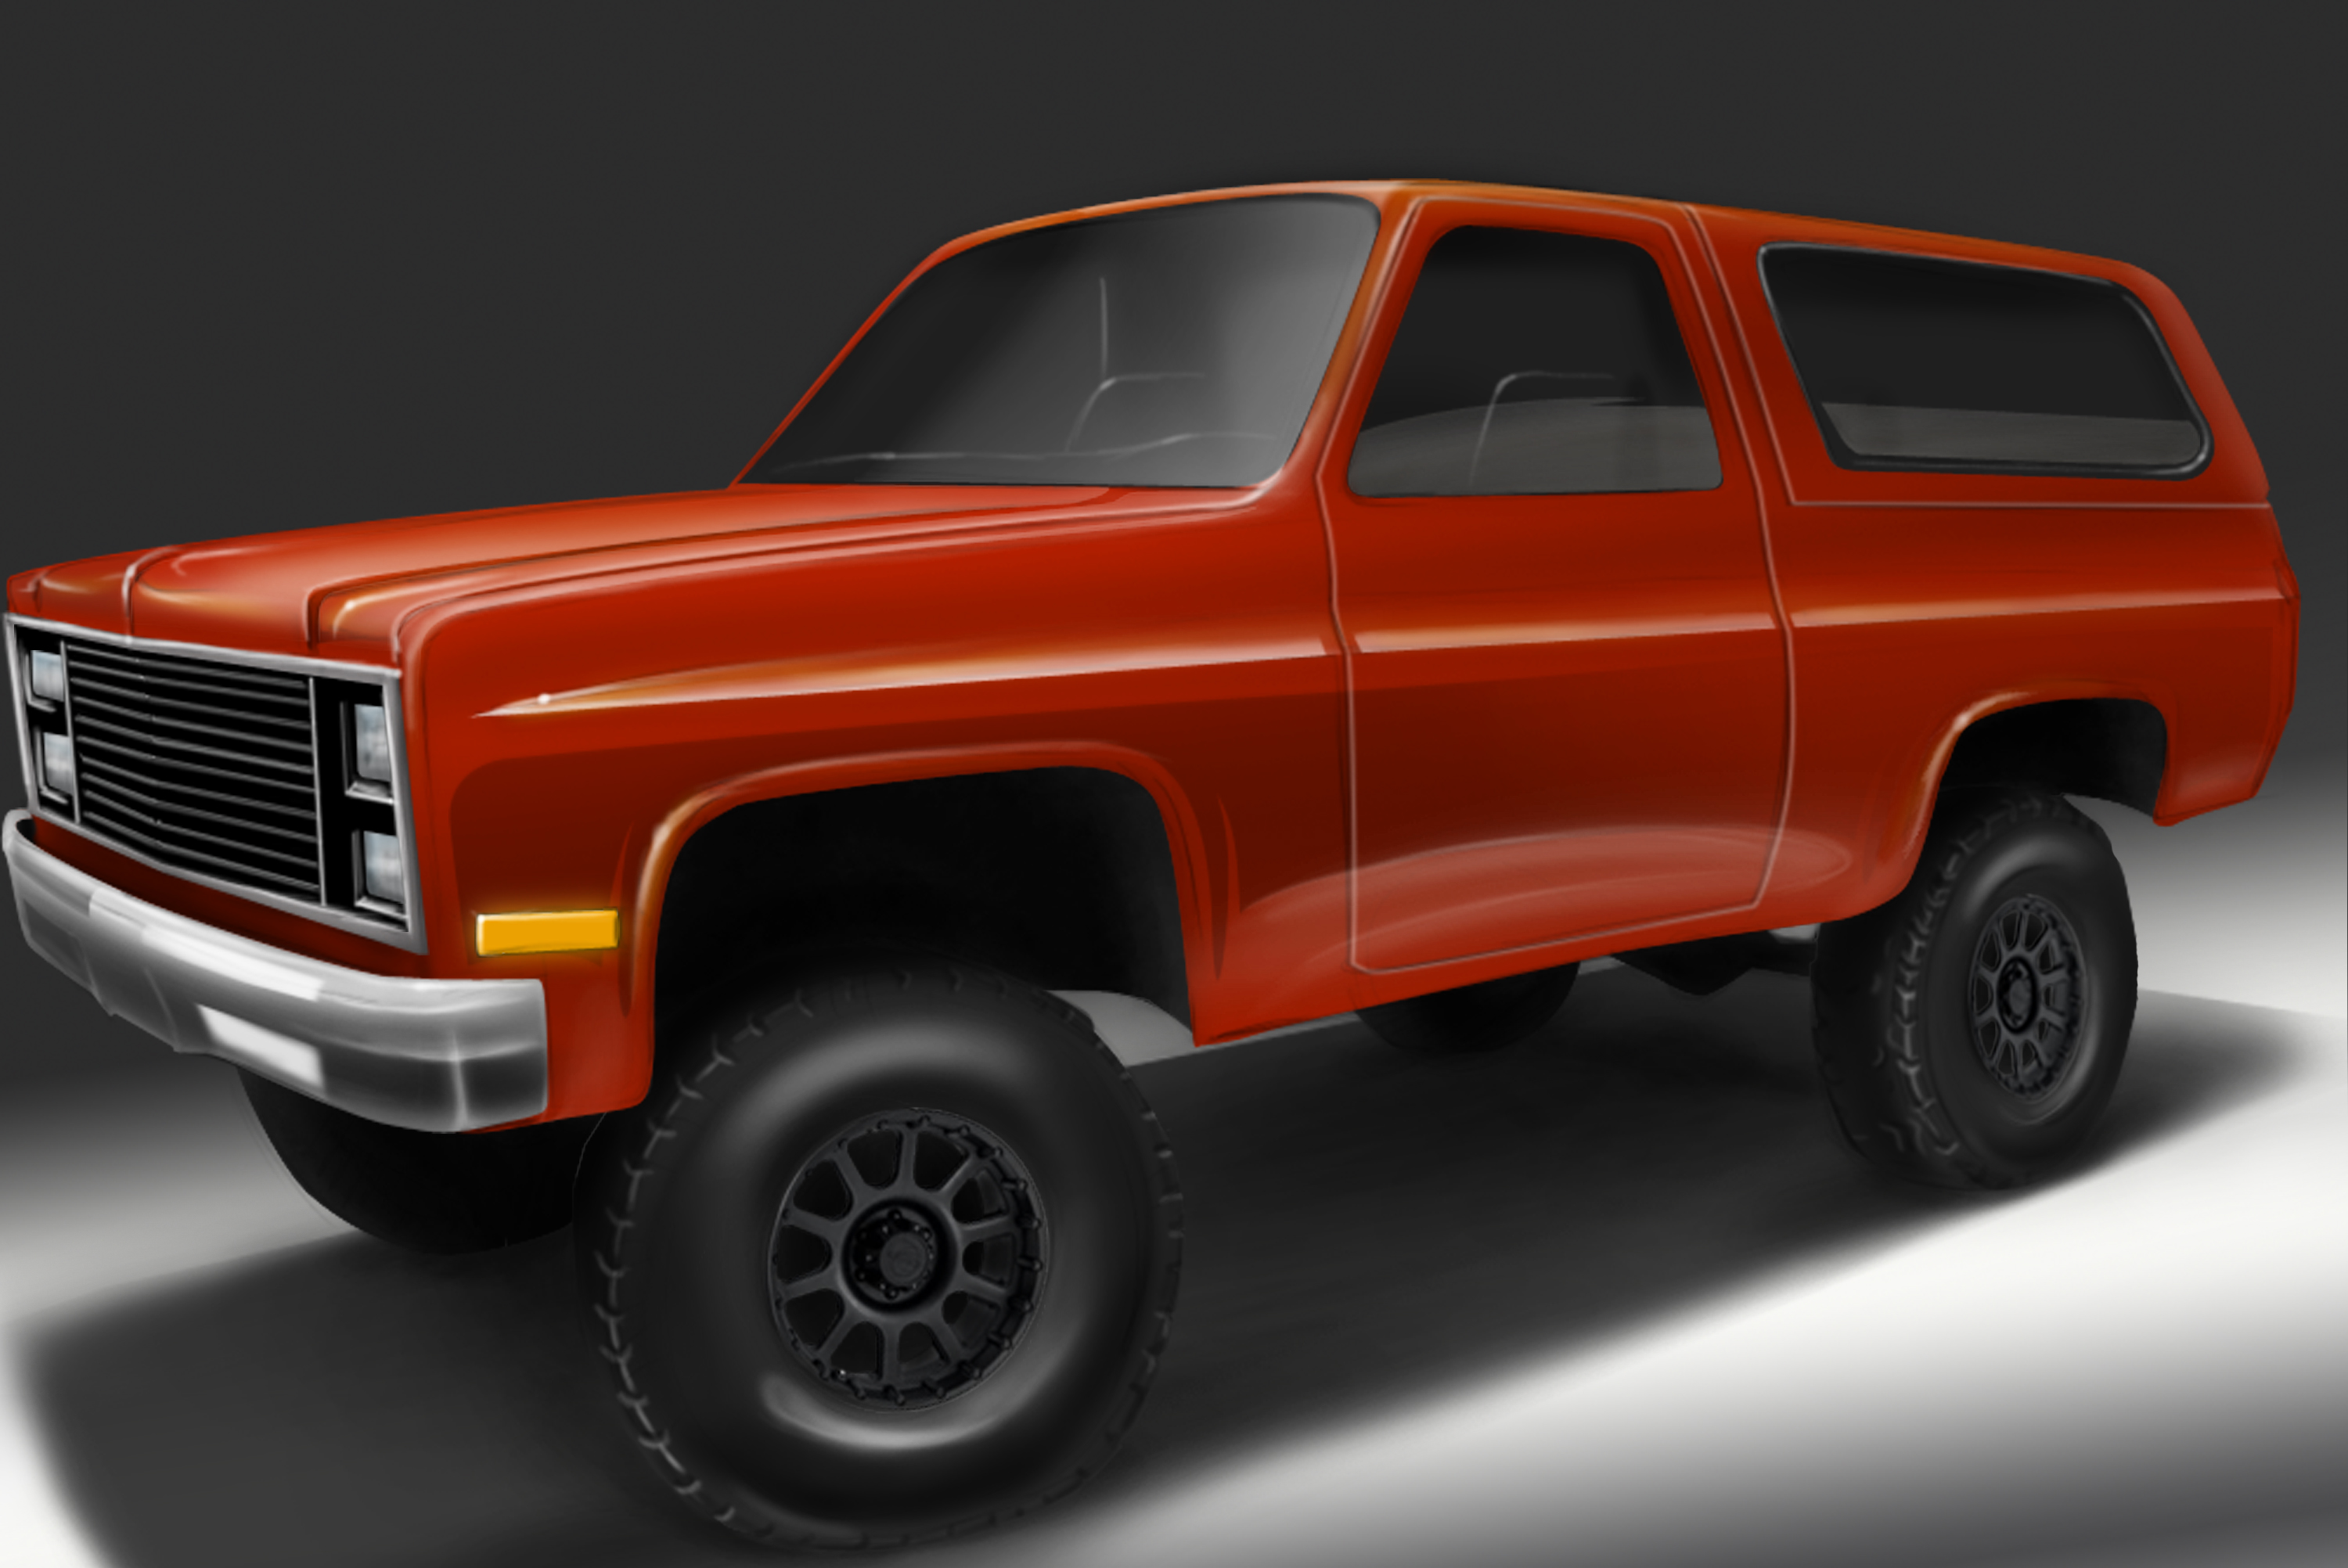 Cars For Less >> drawing, cars, boats, motorcycles, automotive renderings